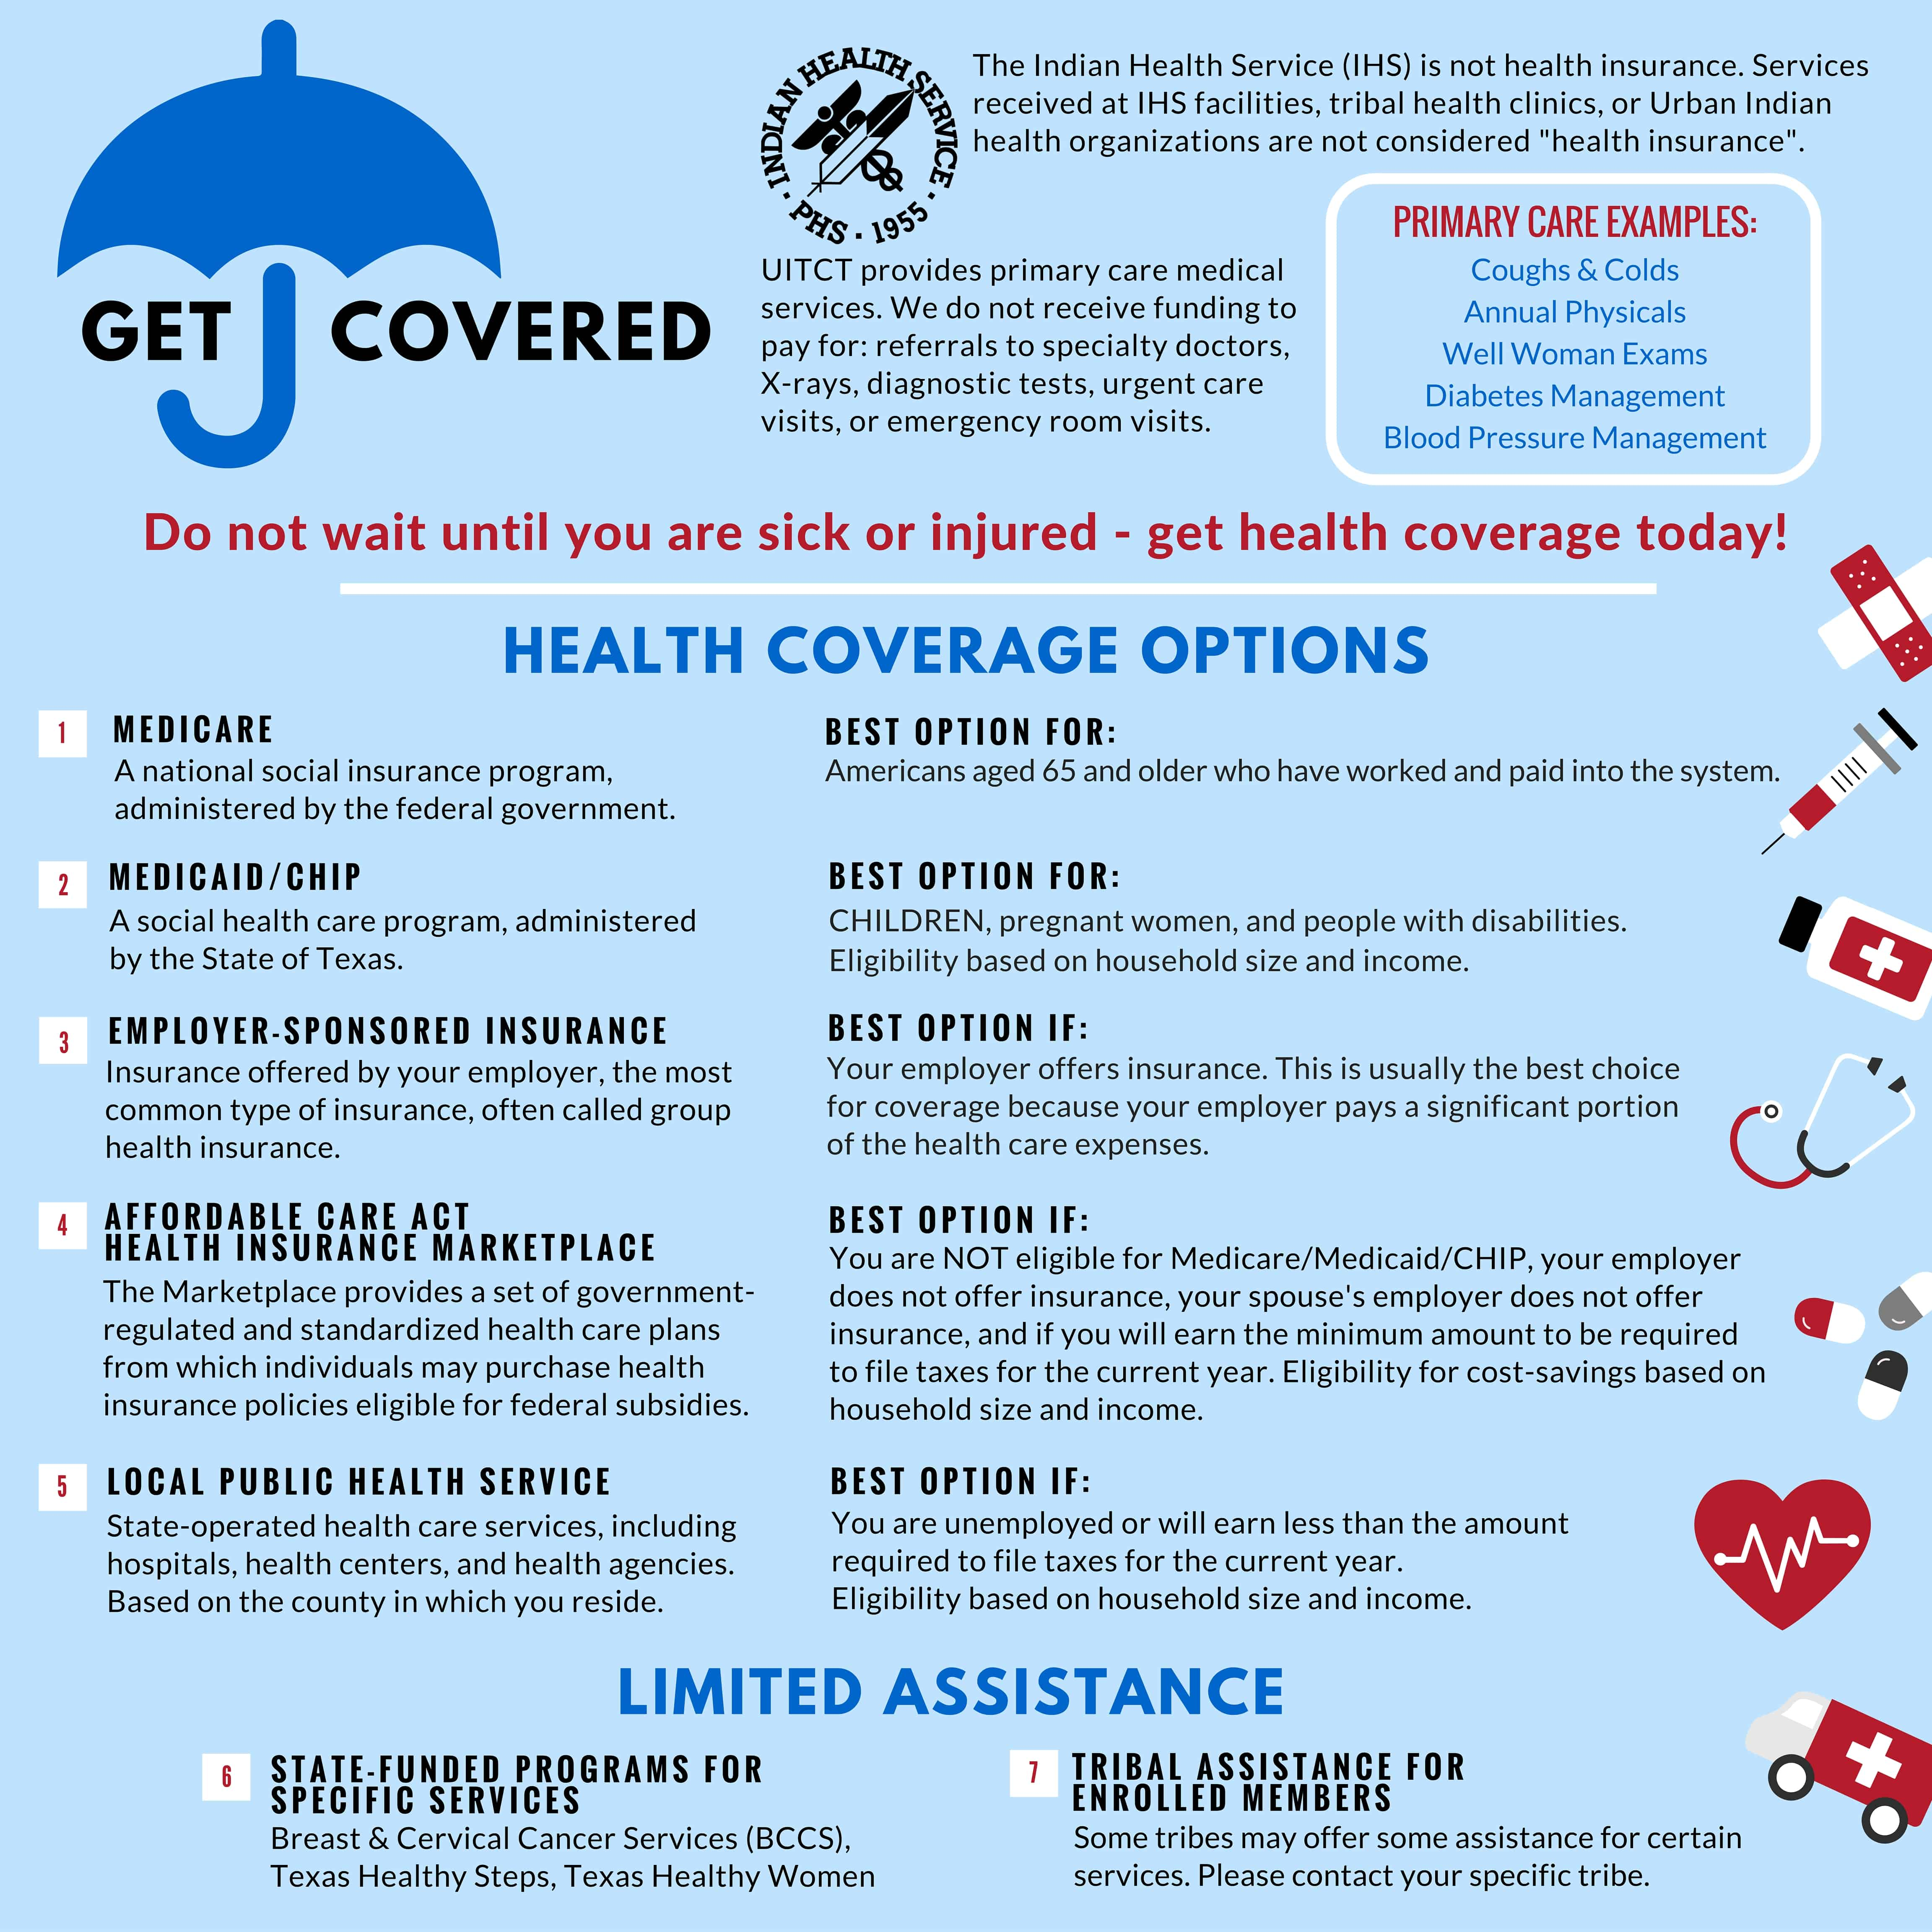 UITCT Health Coverage Poster